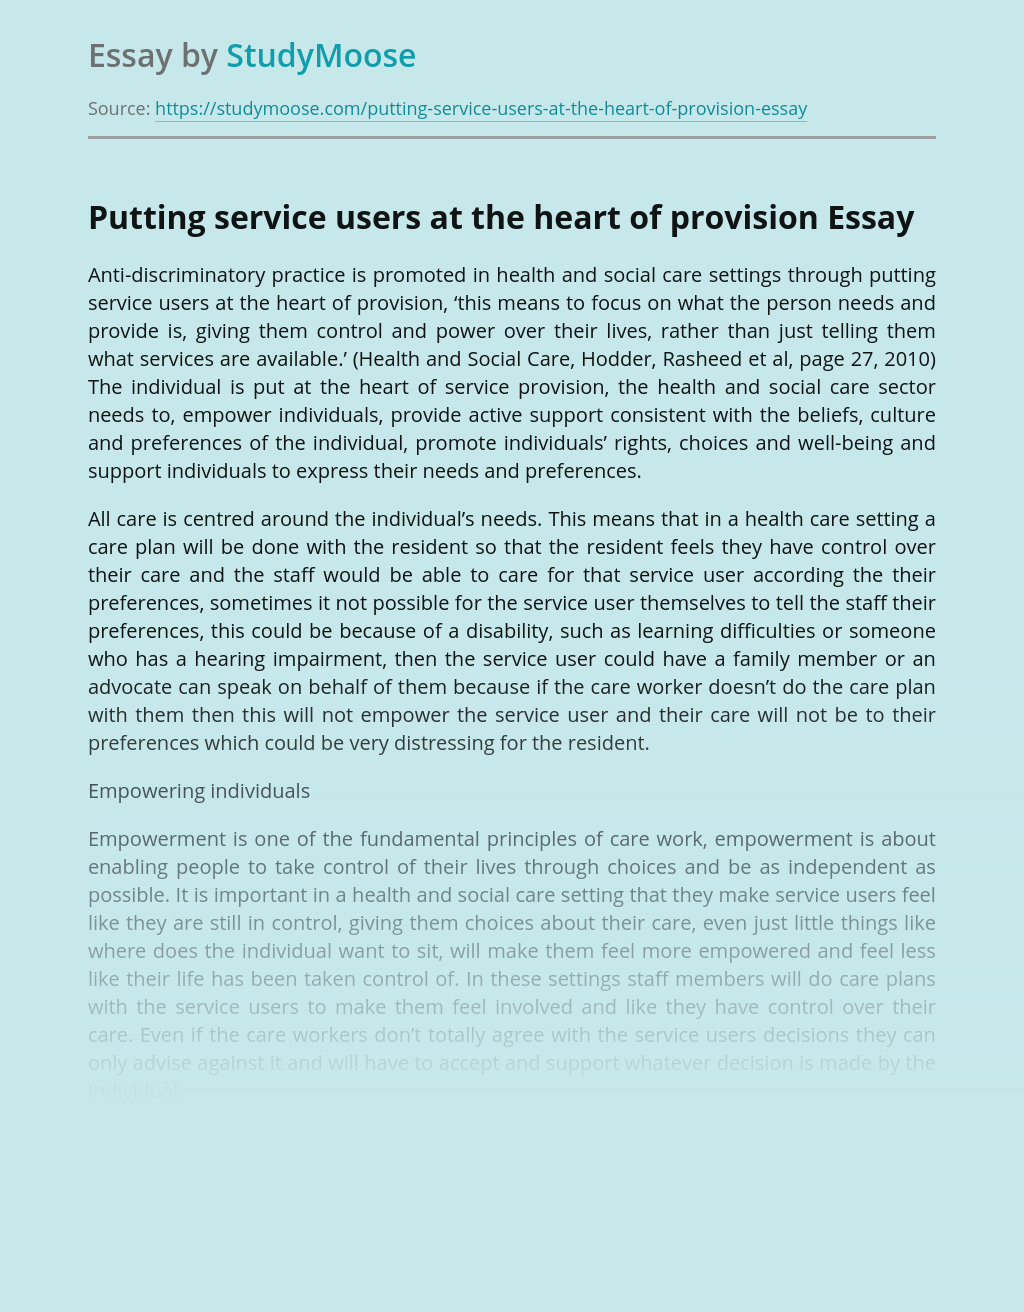 Putting service users at the heart of provision